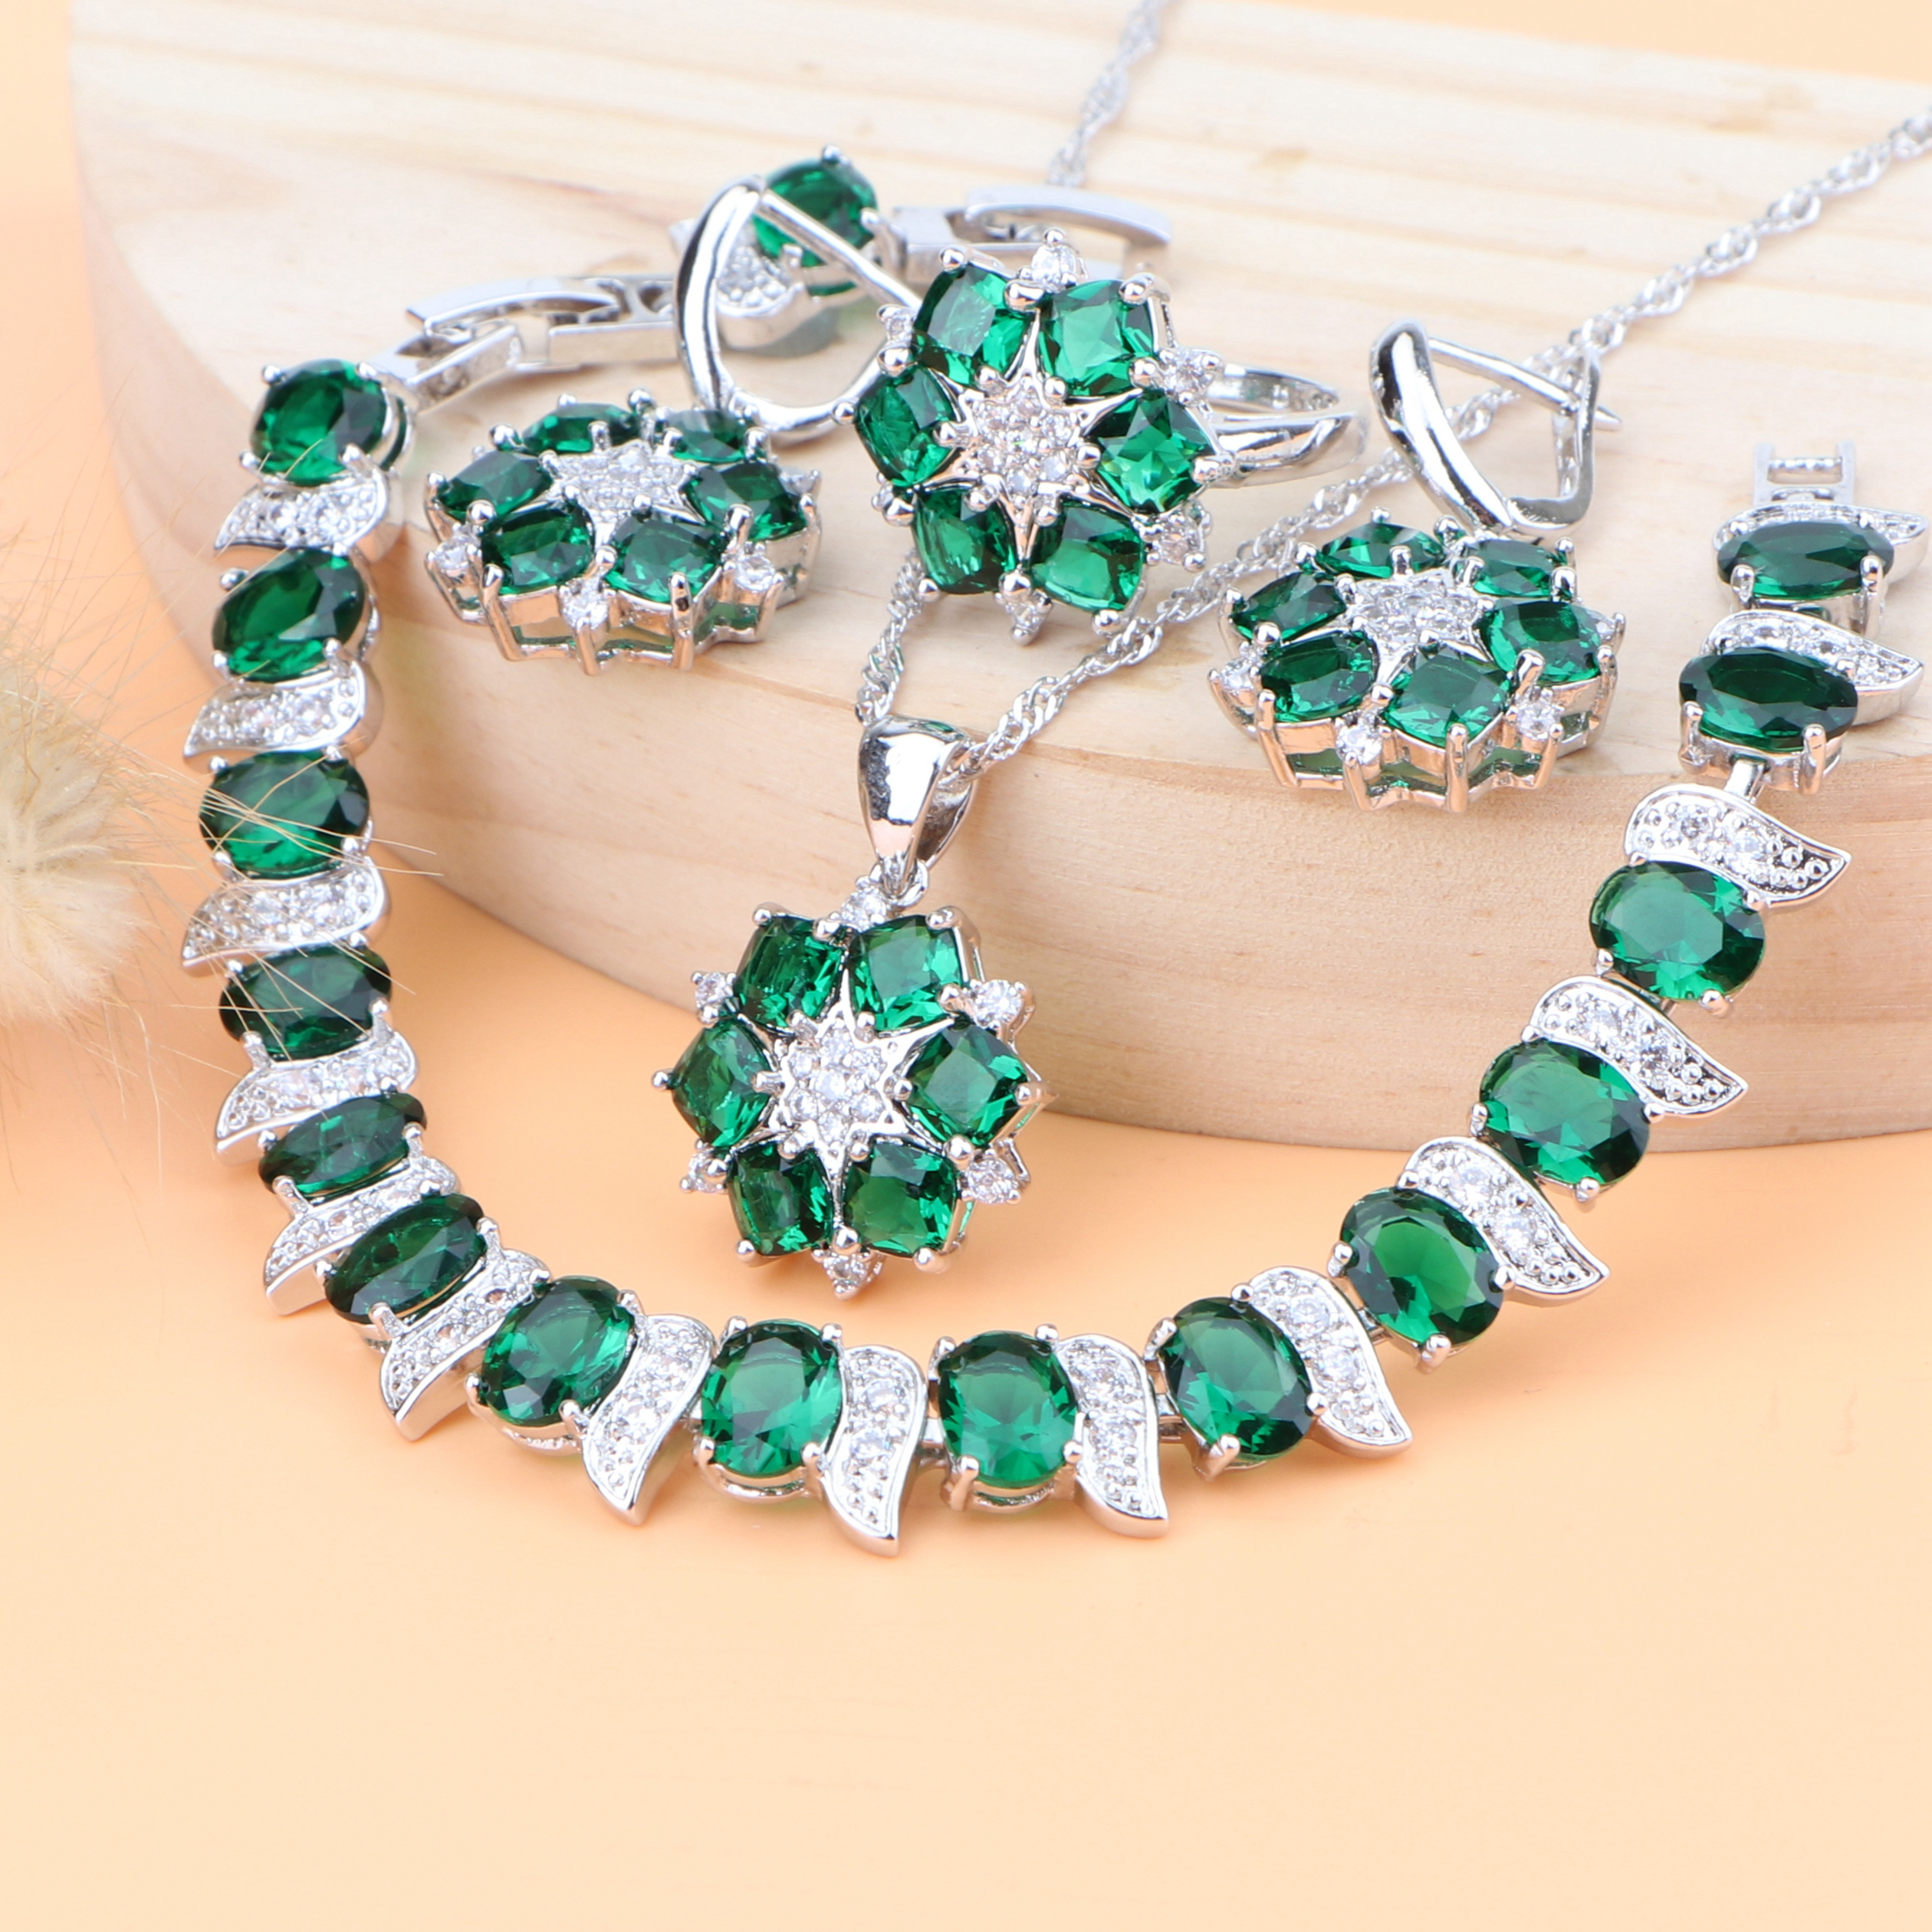 Wedding Women Silver 925 Bridal Jewelry Sets Green Cubic Zirconia Earrings Costume Jewelry Bracelet Rings Necklace Set Gifts Box